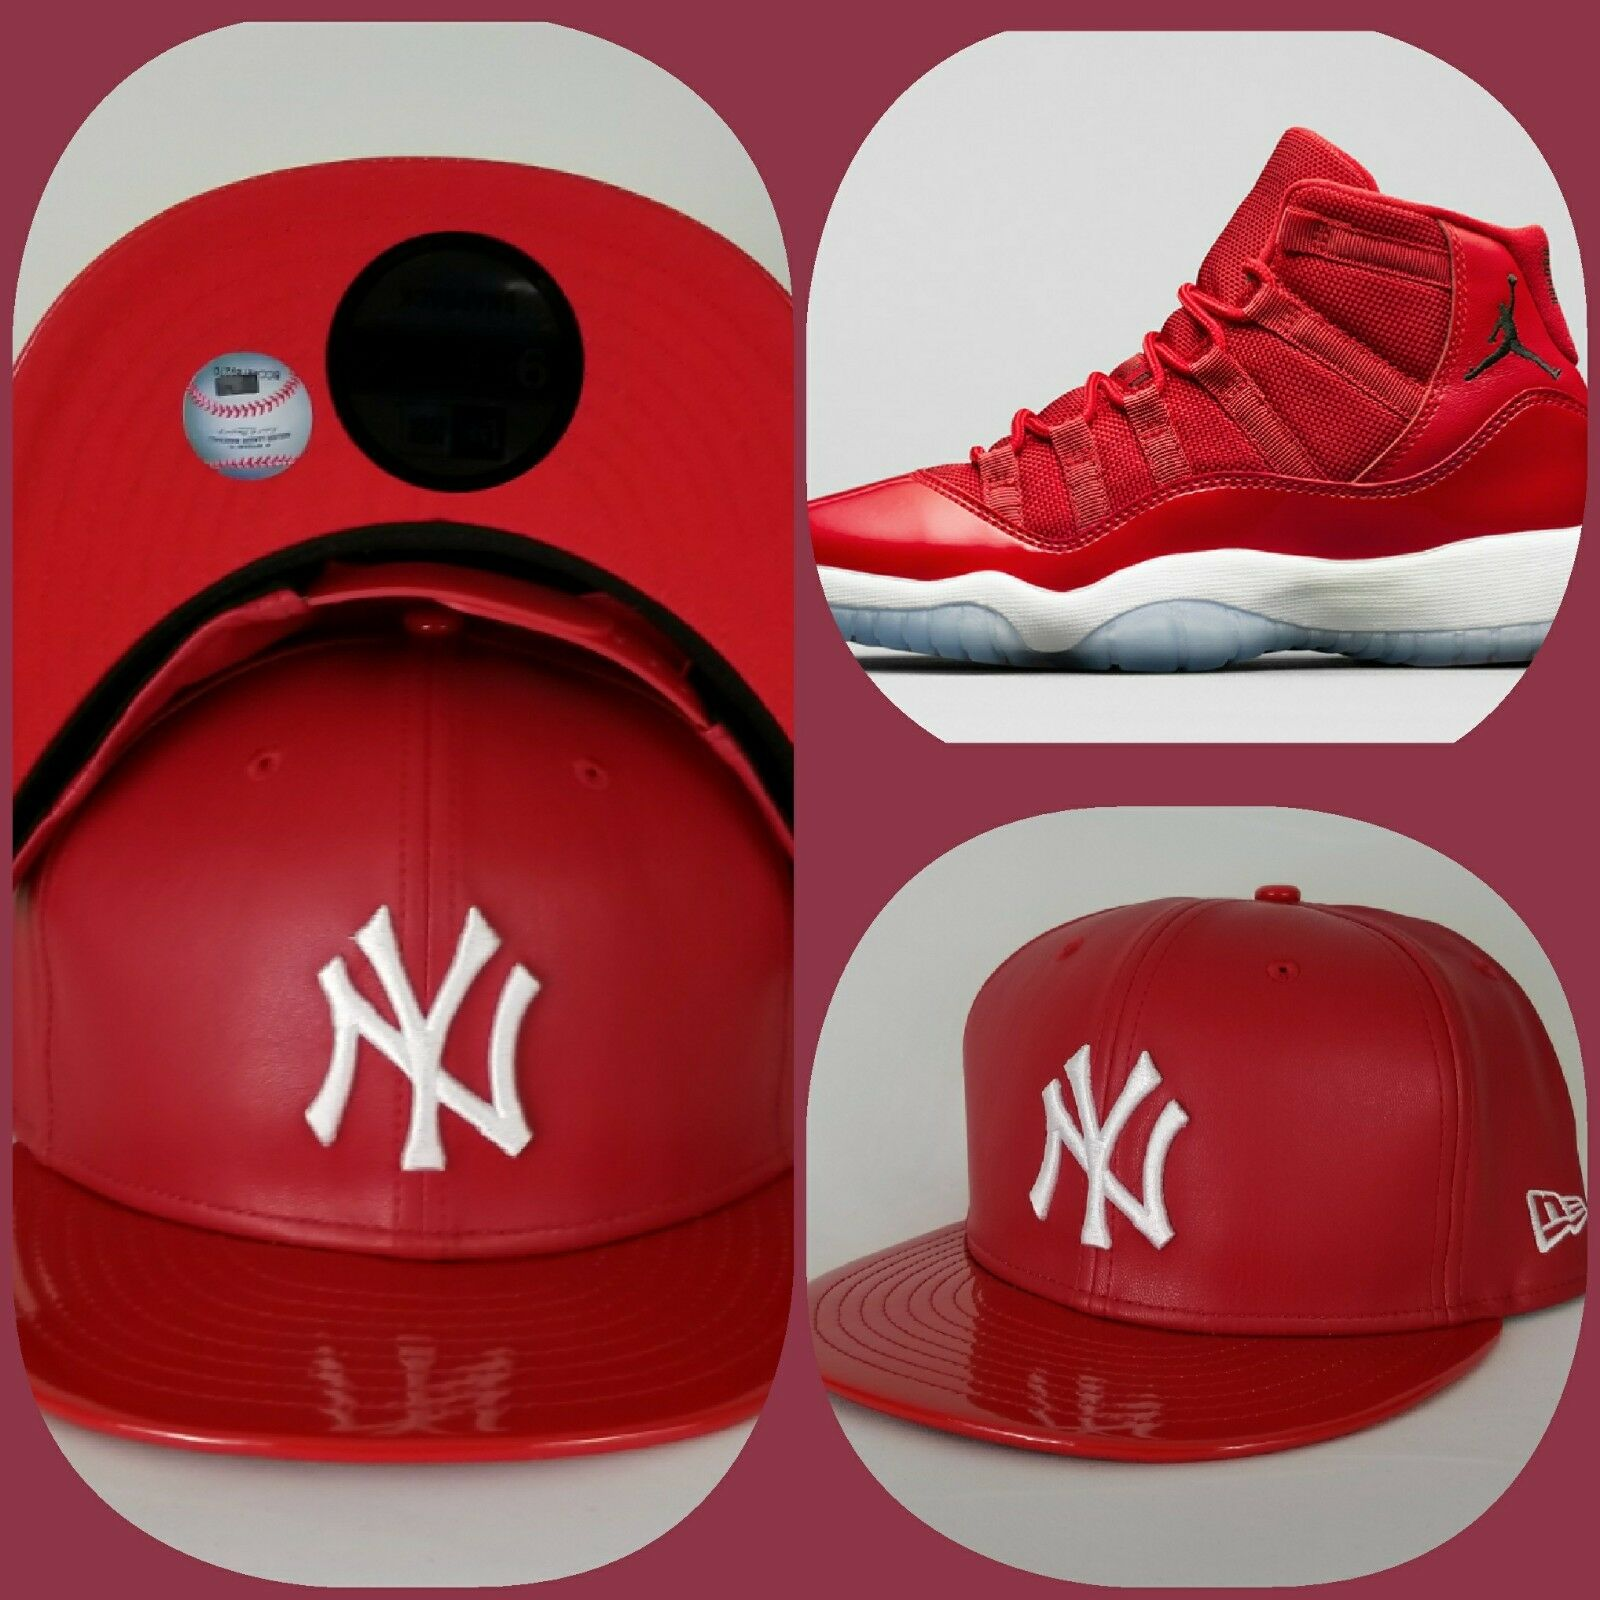 55a5f590a9aa08 Details about New Era New York Yankee Red Faux Leather snapback hat Jordan  11 Gym Red